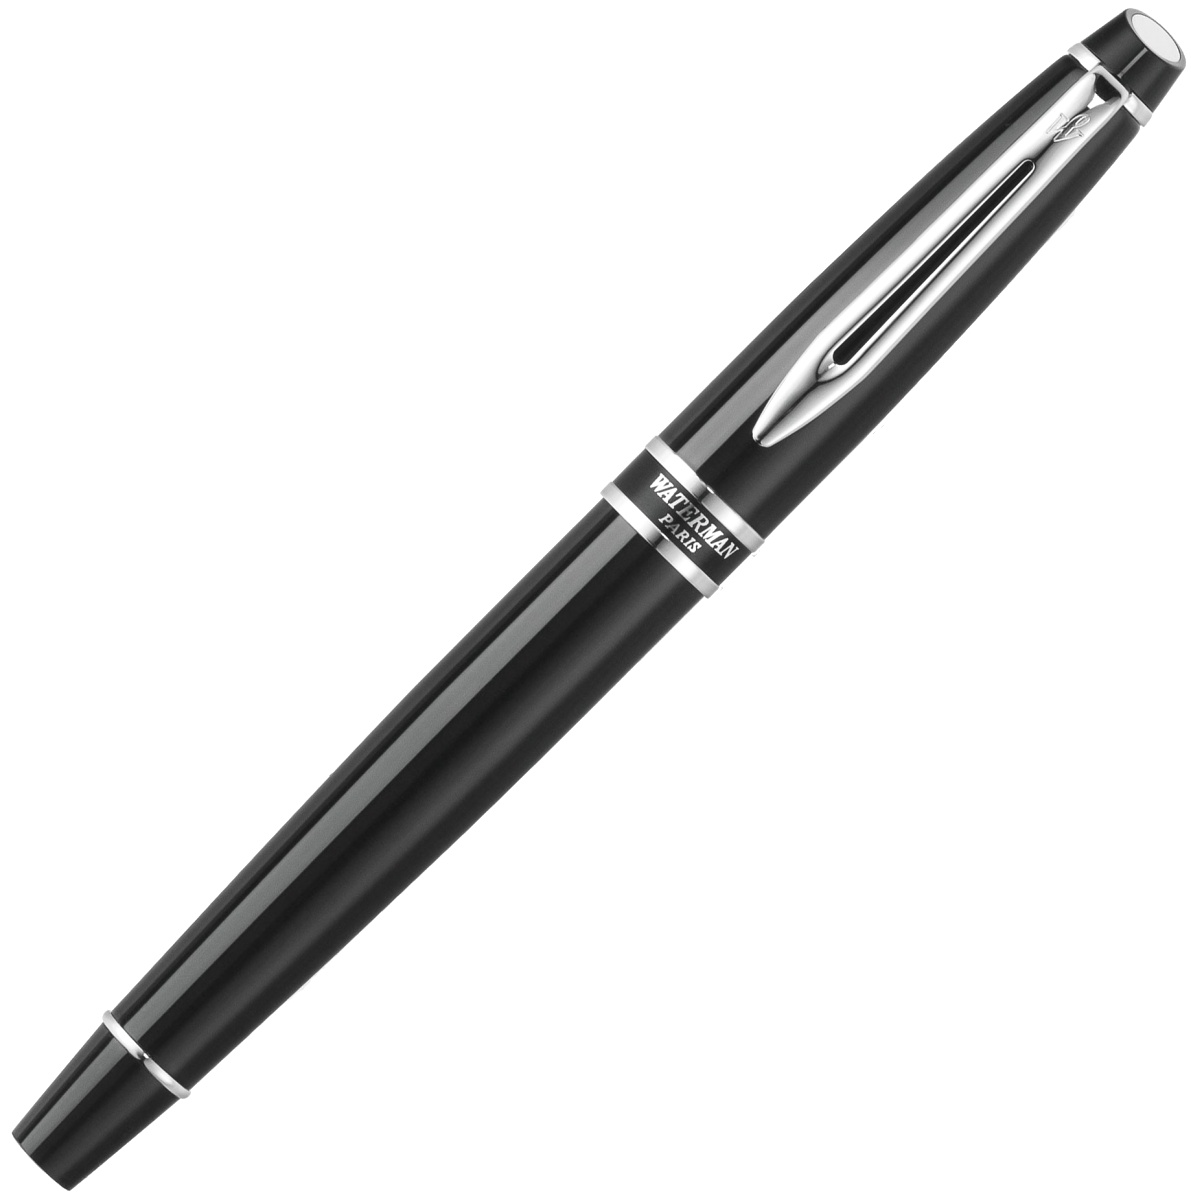 Ручка-роллер Waterman Expert 2, Black Laque CT, фото 2